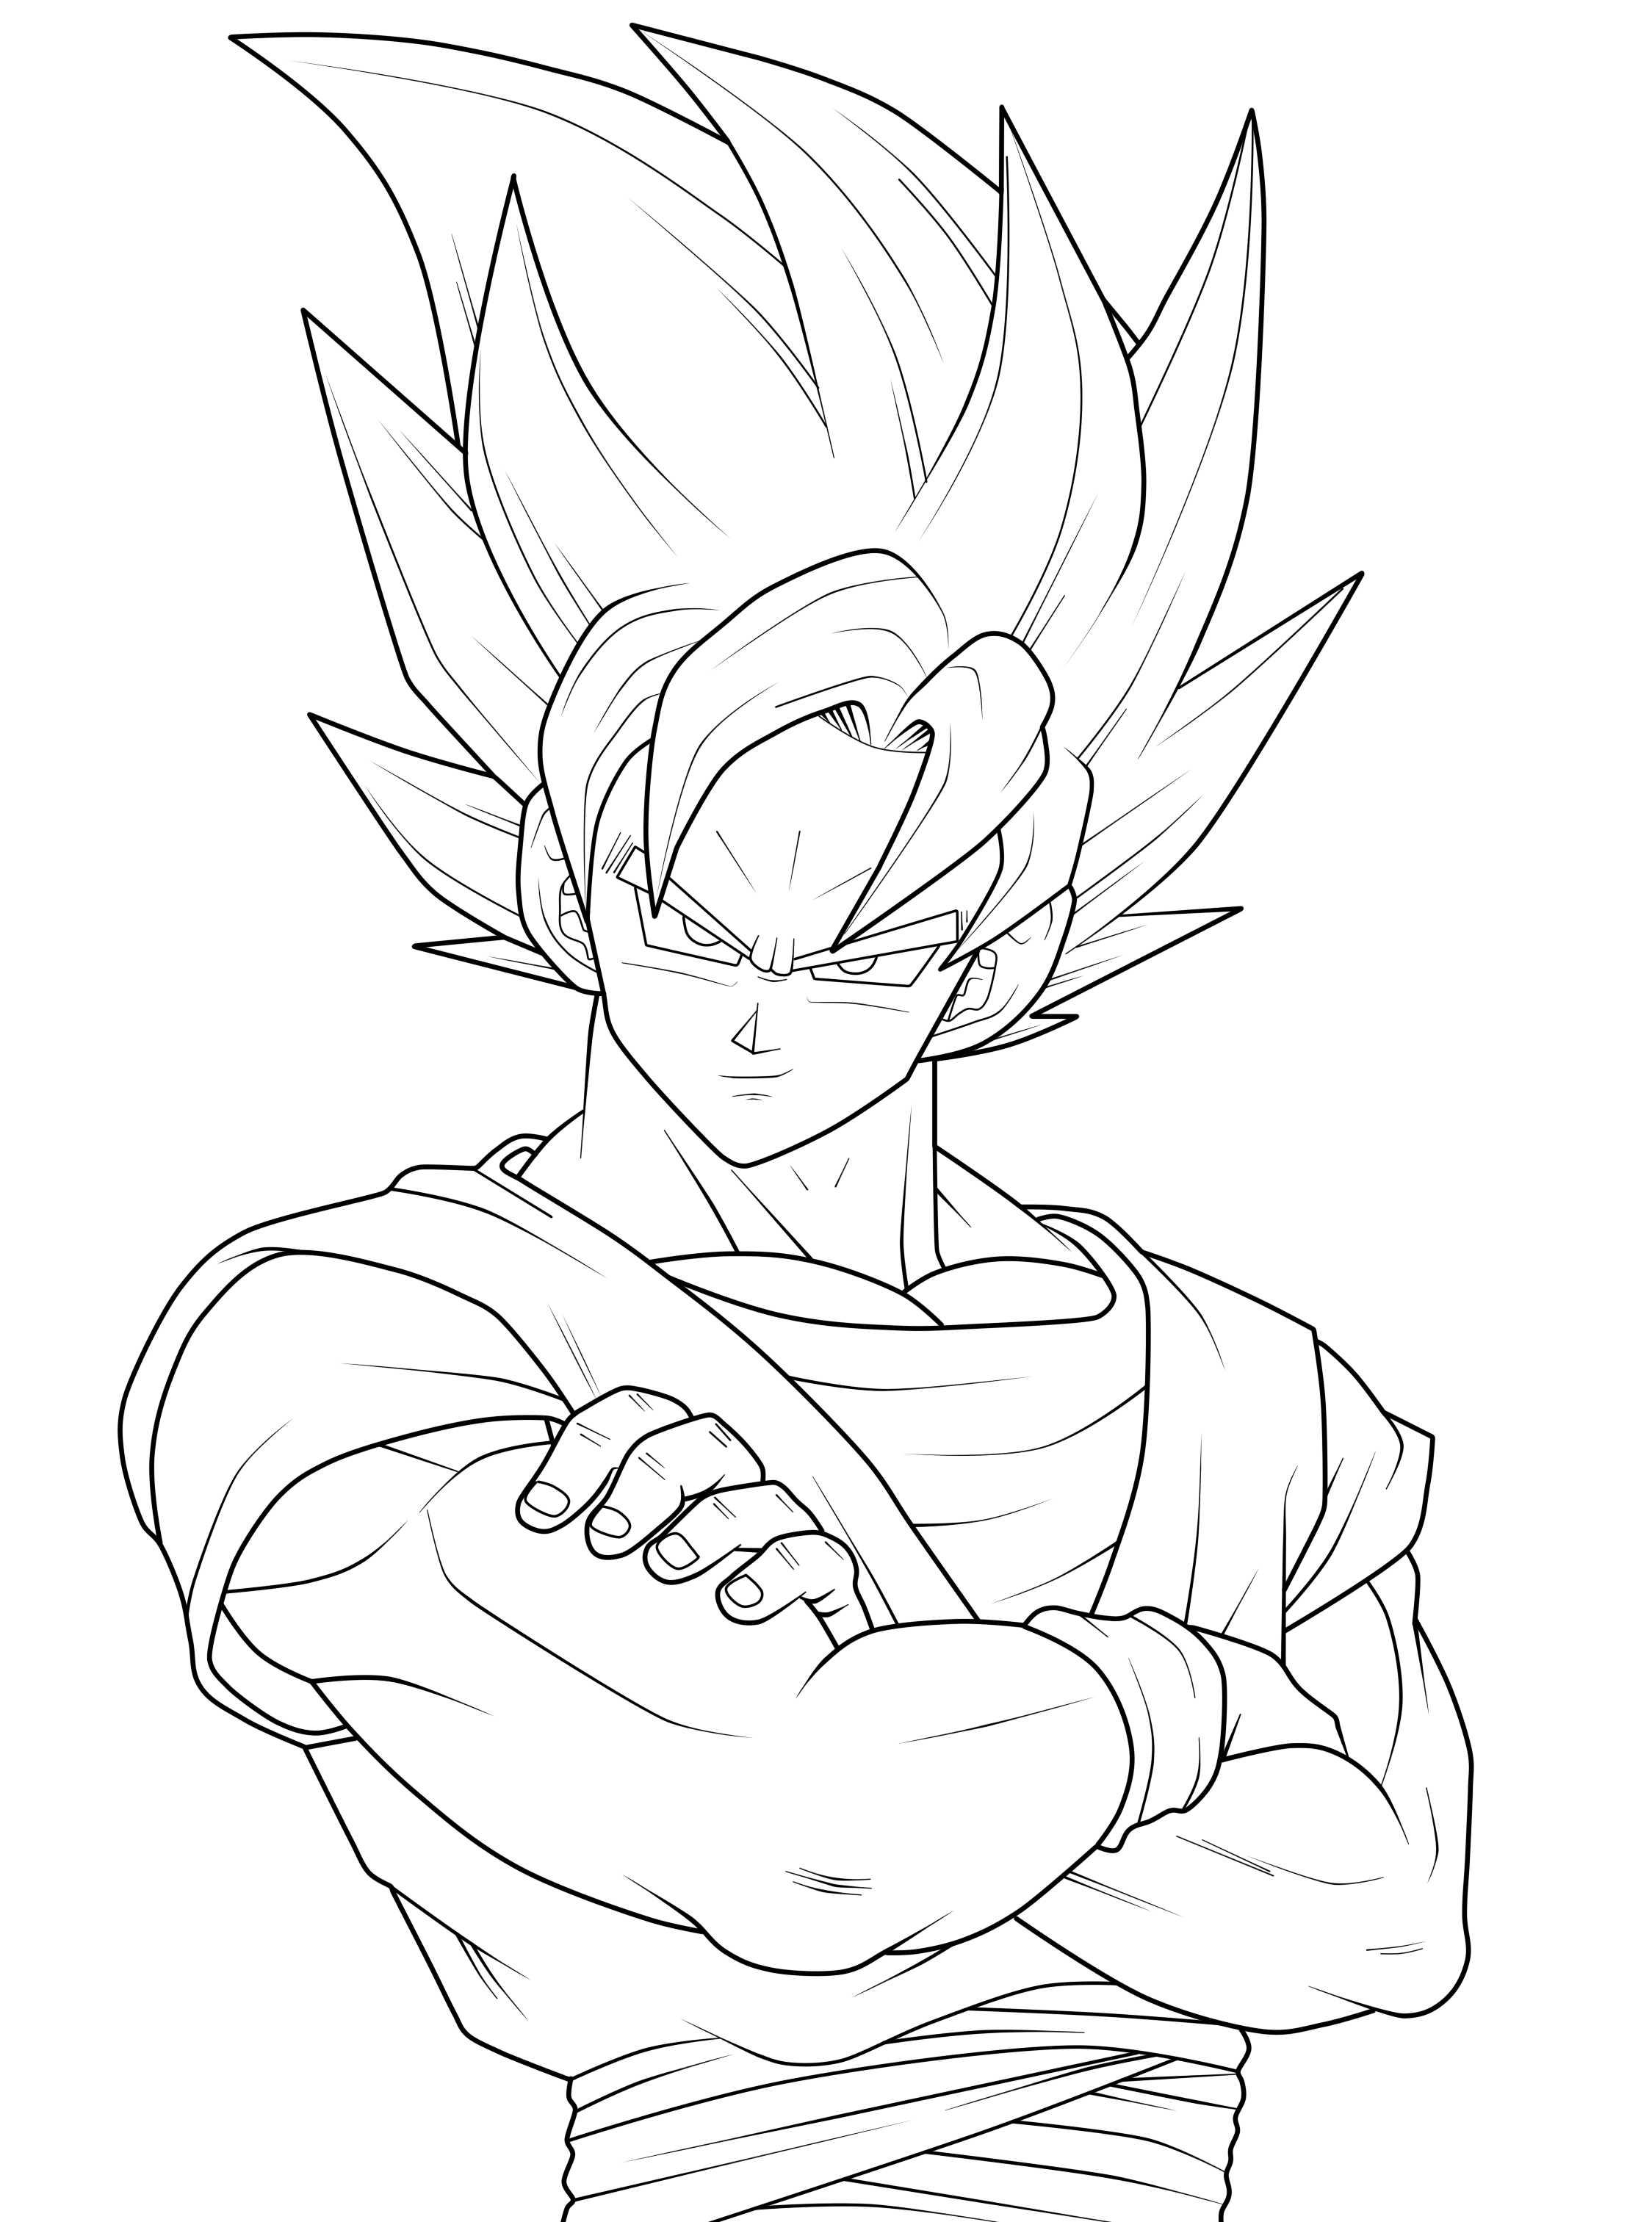 10 pics of goku coloring pages goku coloring pages to print - Super Saiyan Goku Coloring Pages